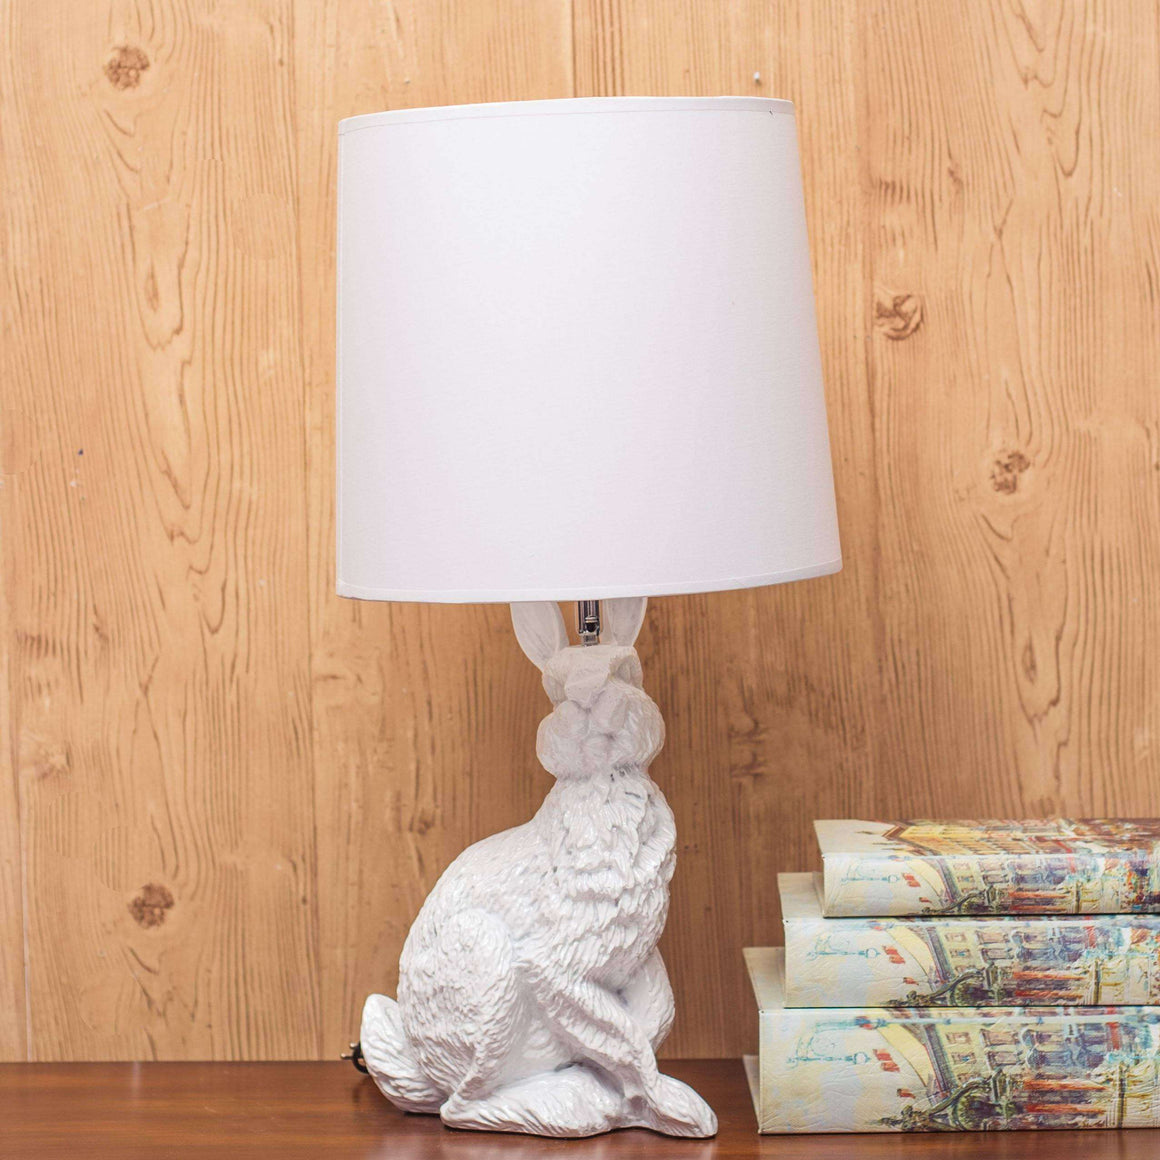 Adorable Hare Table Lamp